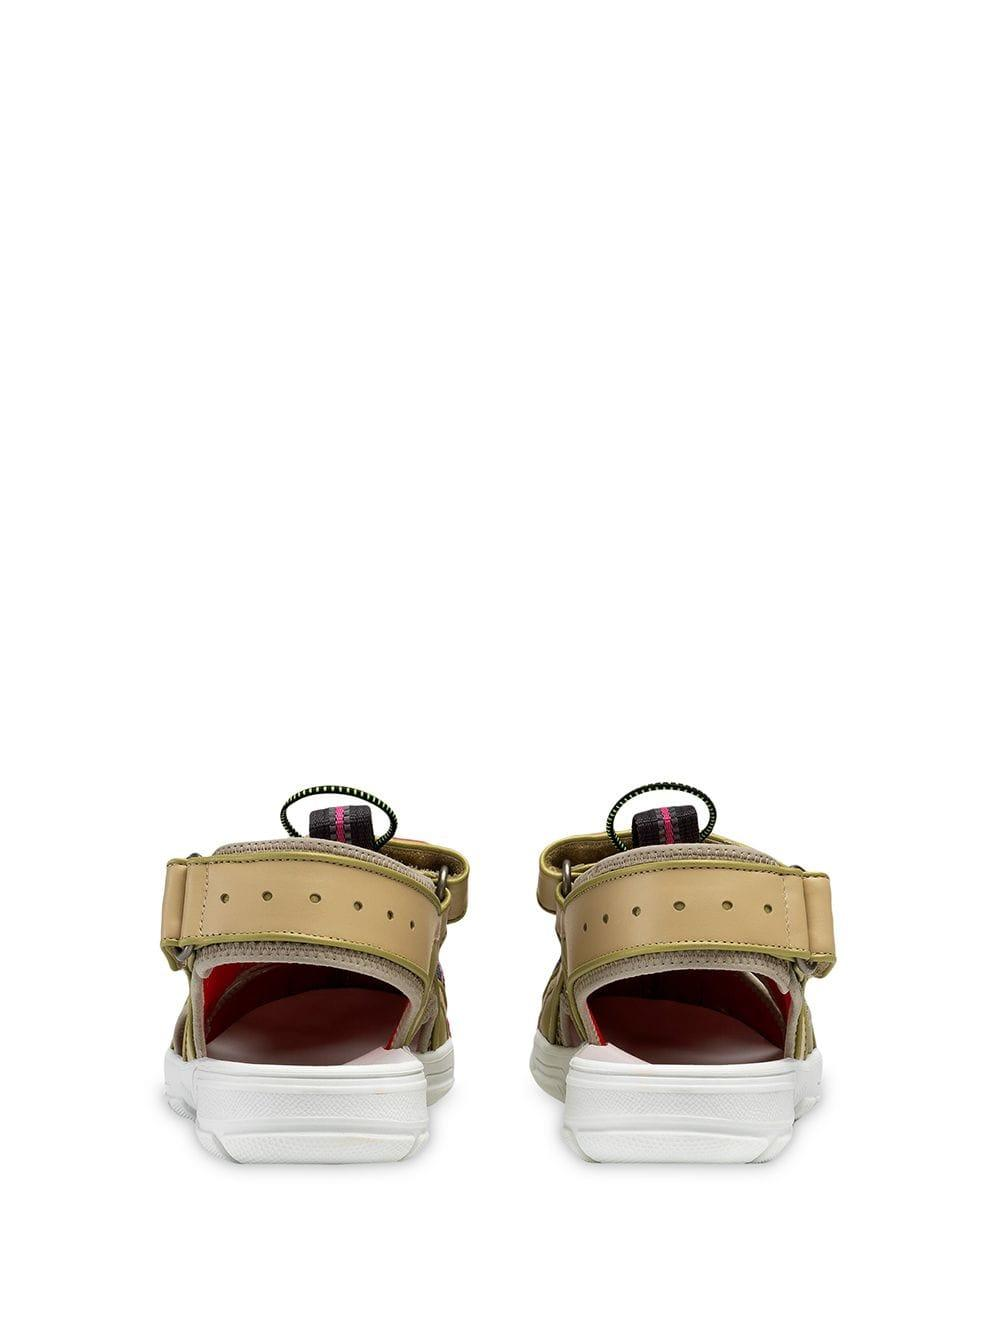 68b71315469 Gucci - Multicolor Leather And Mesh Sandals - Lyst. View fullscreen